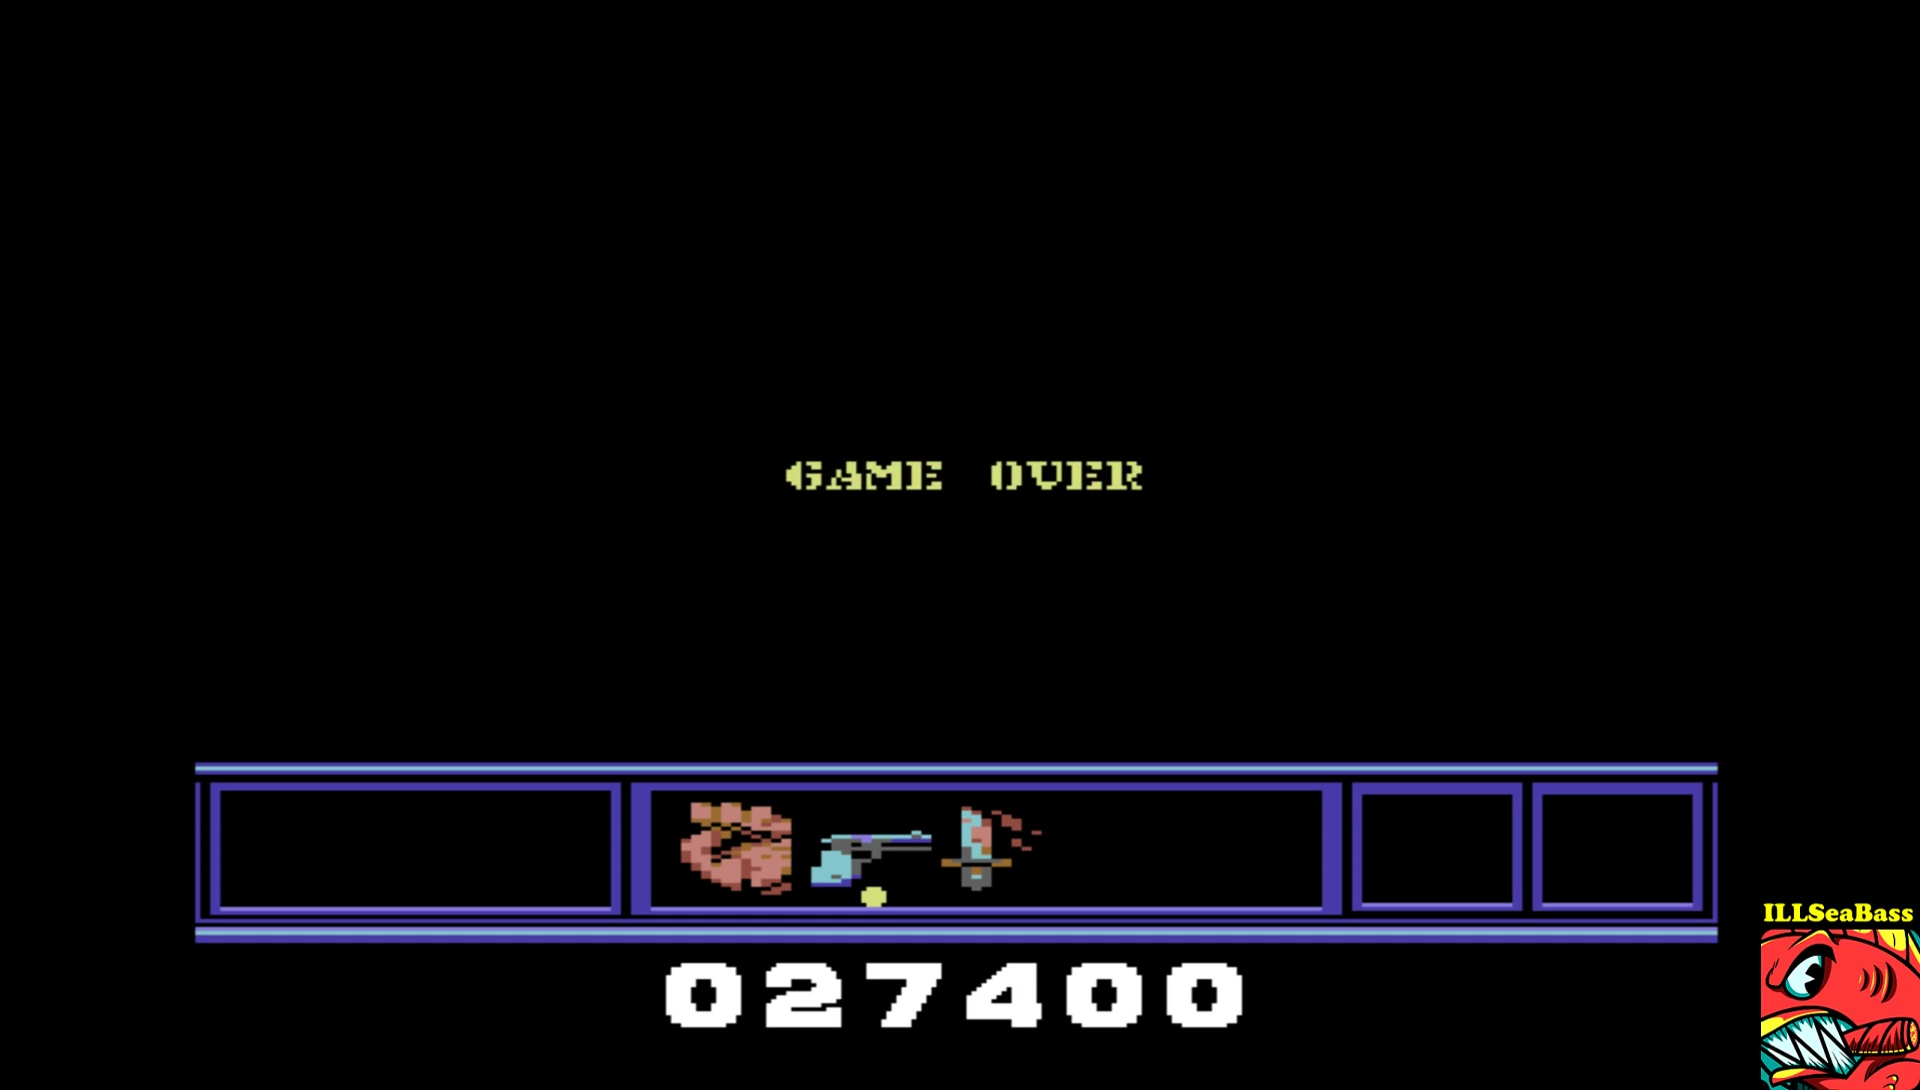 ILLSeaBass: Cobra (Commodore 64 Emulated) 27,400 points on 2017-04-17 23:36:39